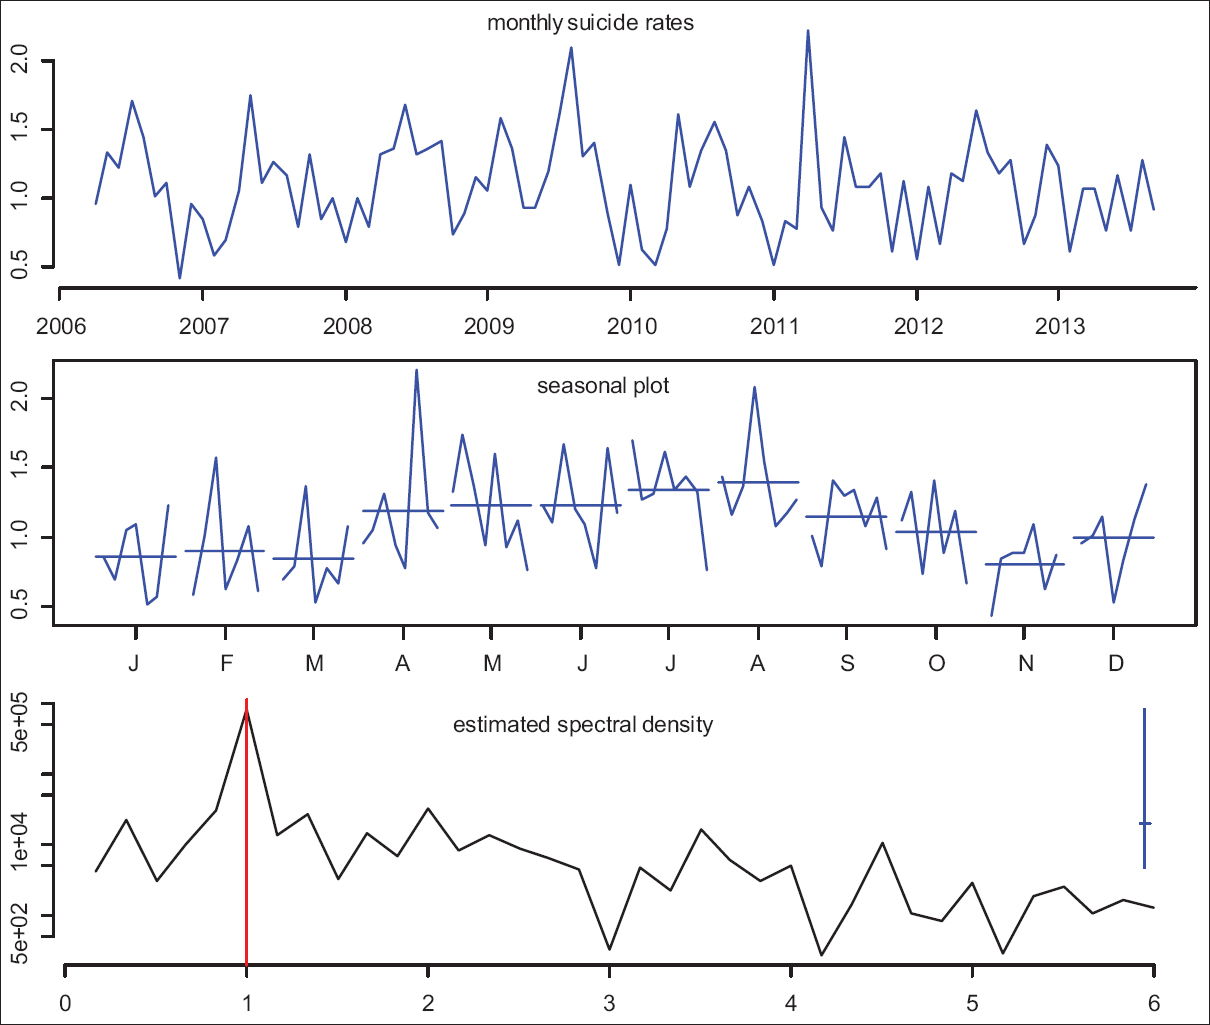 Figure 1: Upper panel: Time series plot of the monthly completed suicide rate. Middle panel: the month plot of suicide rates. Lower panel: The estimated spectral density function of the suicide rates